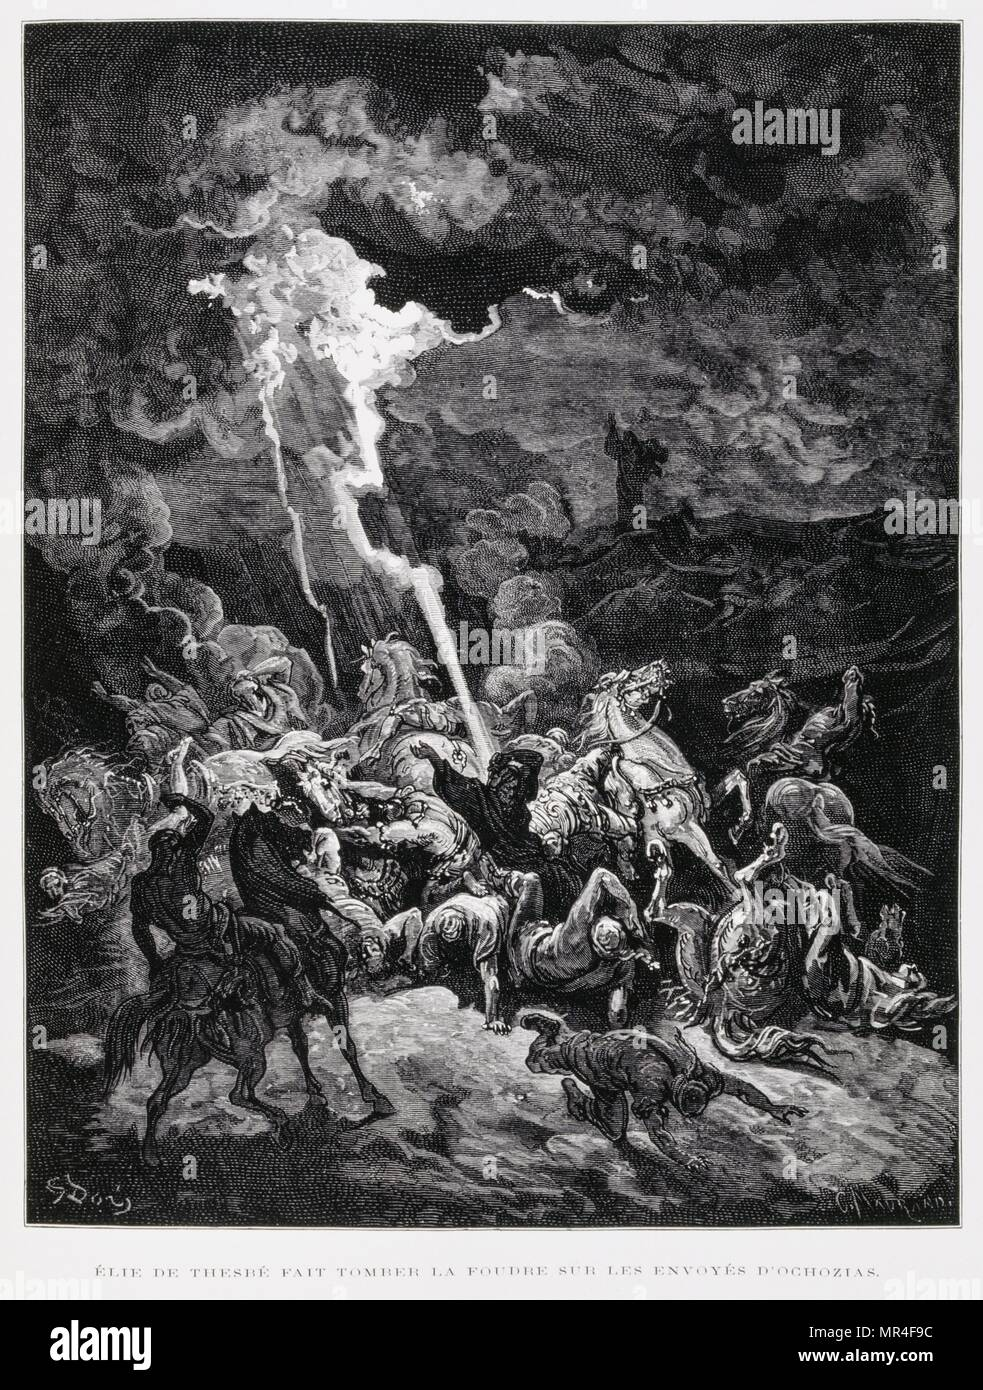 Elijah destroys the messengers of Ahaziah, Illustration from the Dore Bible 1866. In 1866, the French artist and illustrator Gustave Dore (1832–1883), published a series of 241 wood engravings for a new deluxe edition of the 1843 French translation of the Vulgate Bible, popularly known as the Bible de Tours. This new edition was known as La Grande Bible de Tours and its illustrations were immensely successful - Stock Image